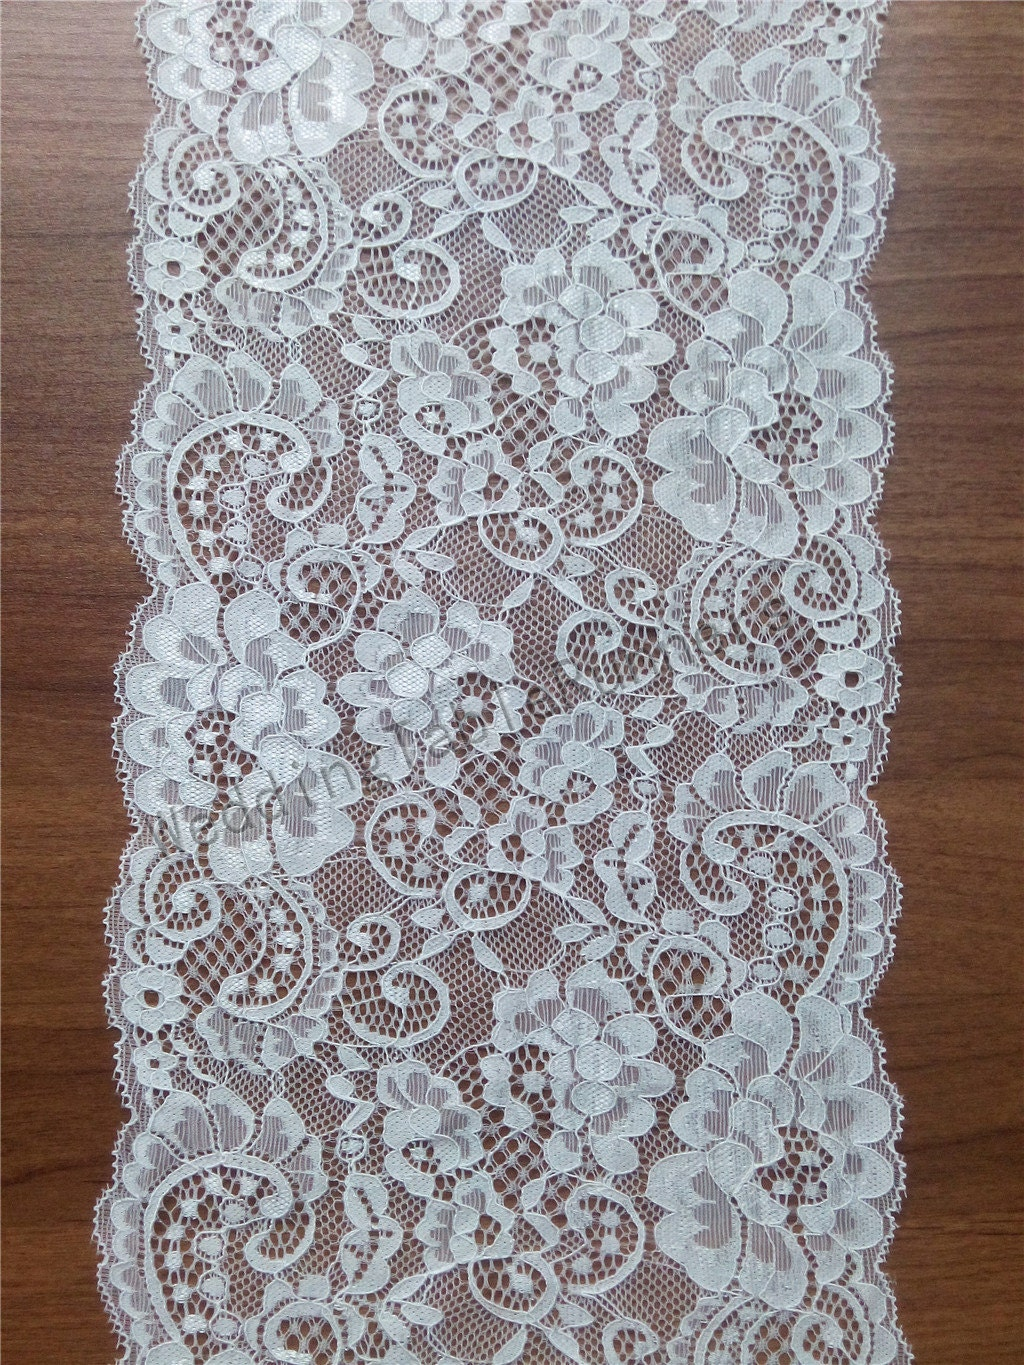 20ft ivory lace table runner 7 wedding table runners